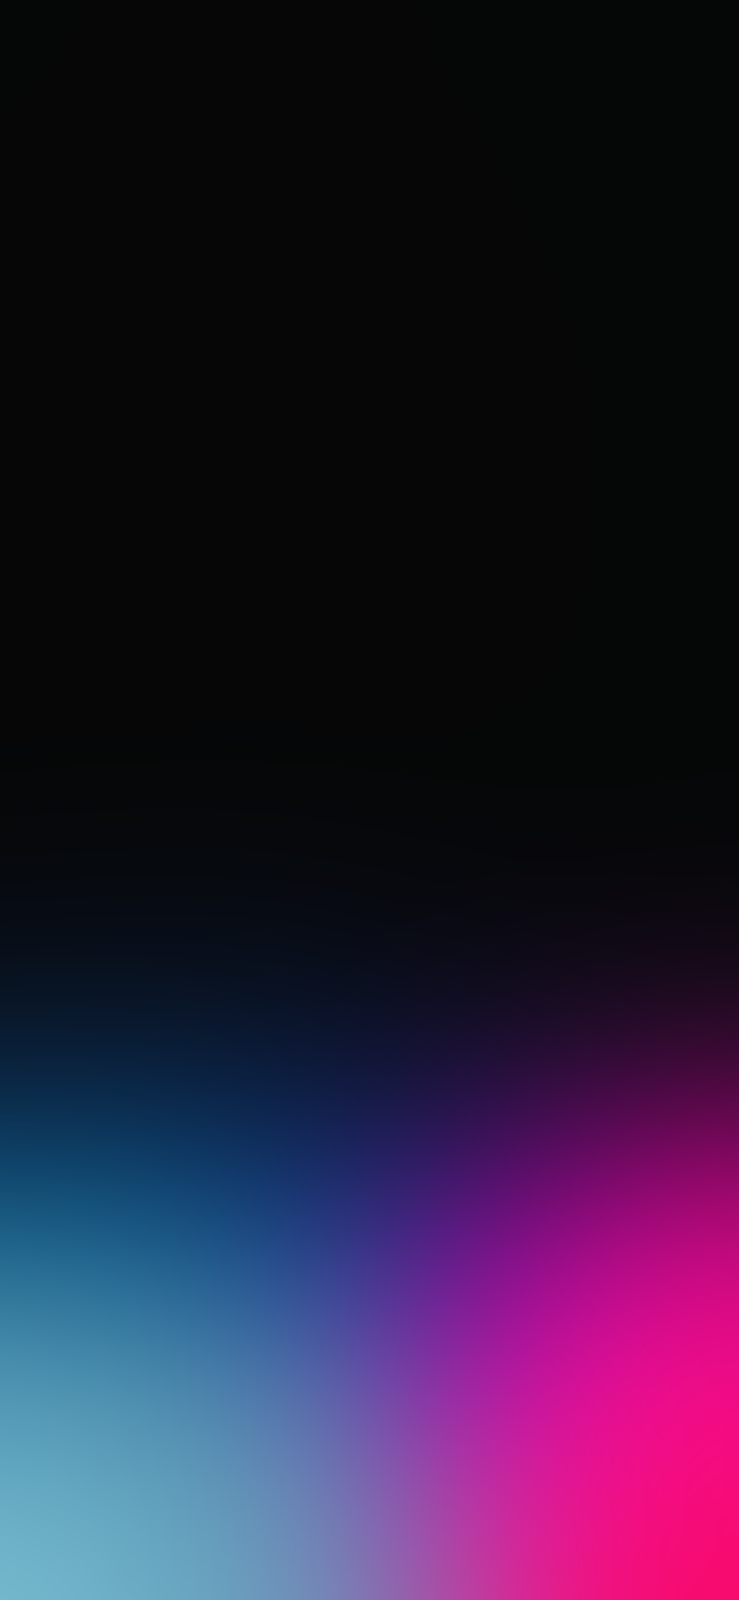 Gradient Blue And Pink By Ar72014 Iphone X Xs Xr Xsmax